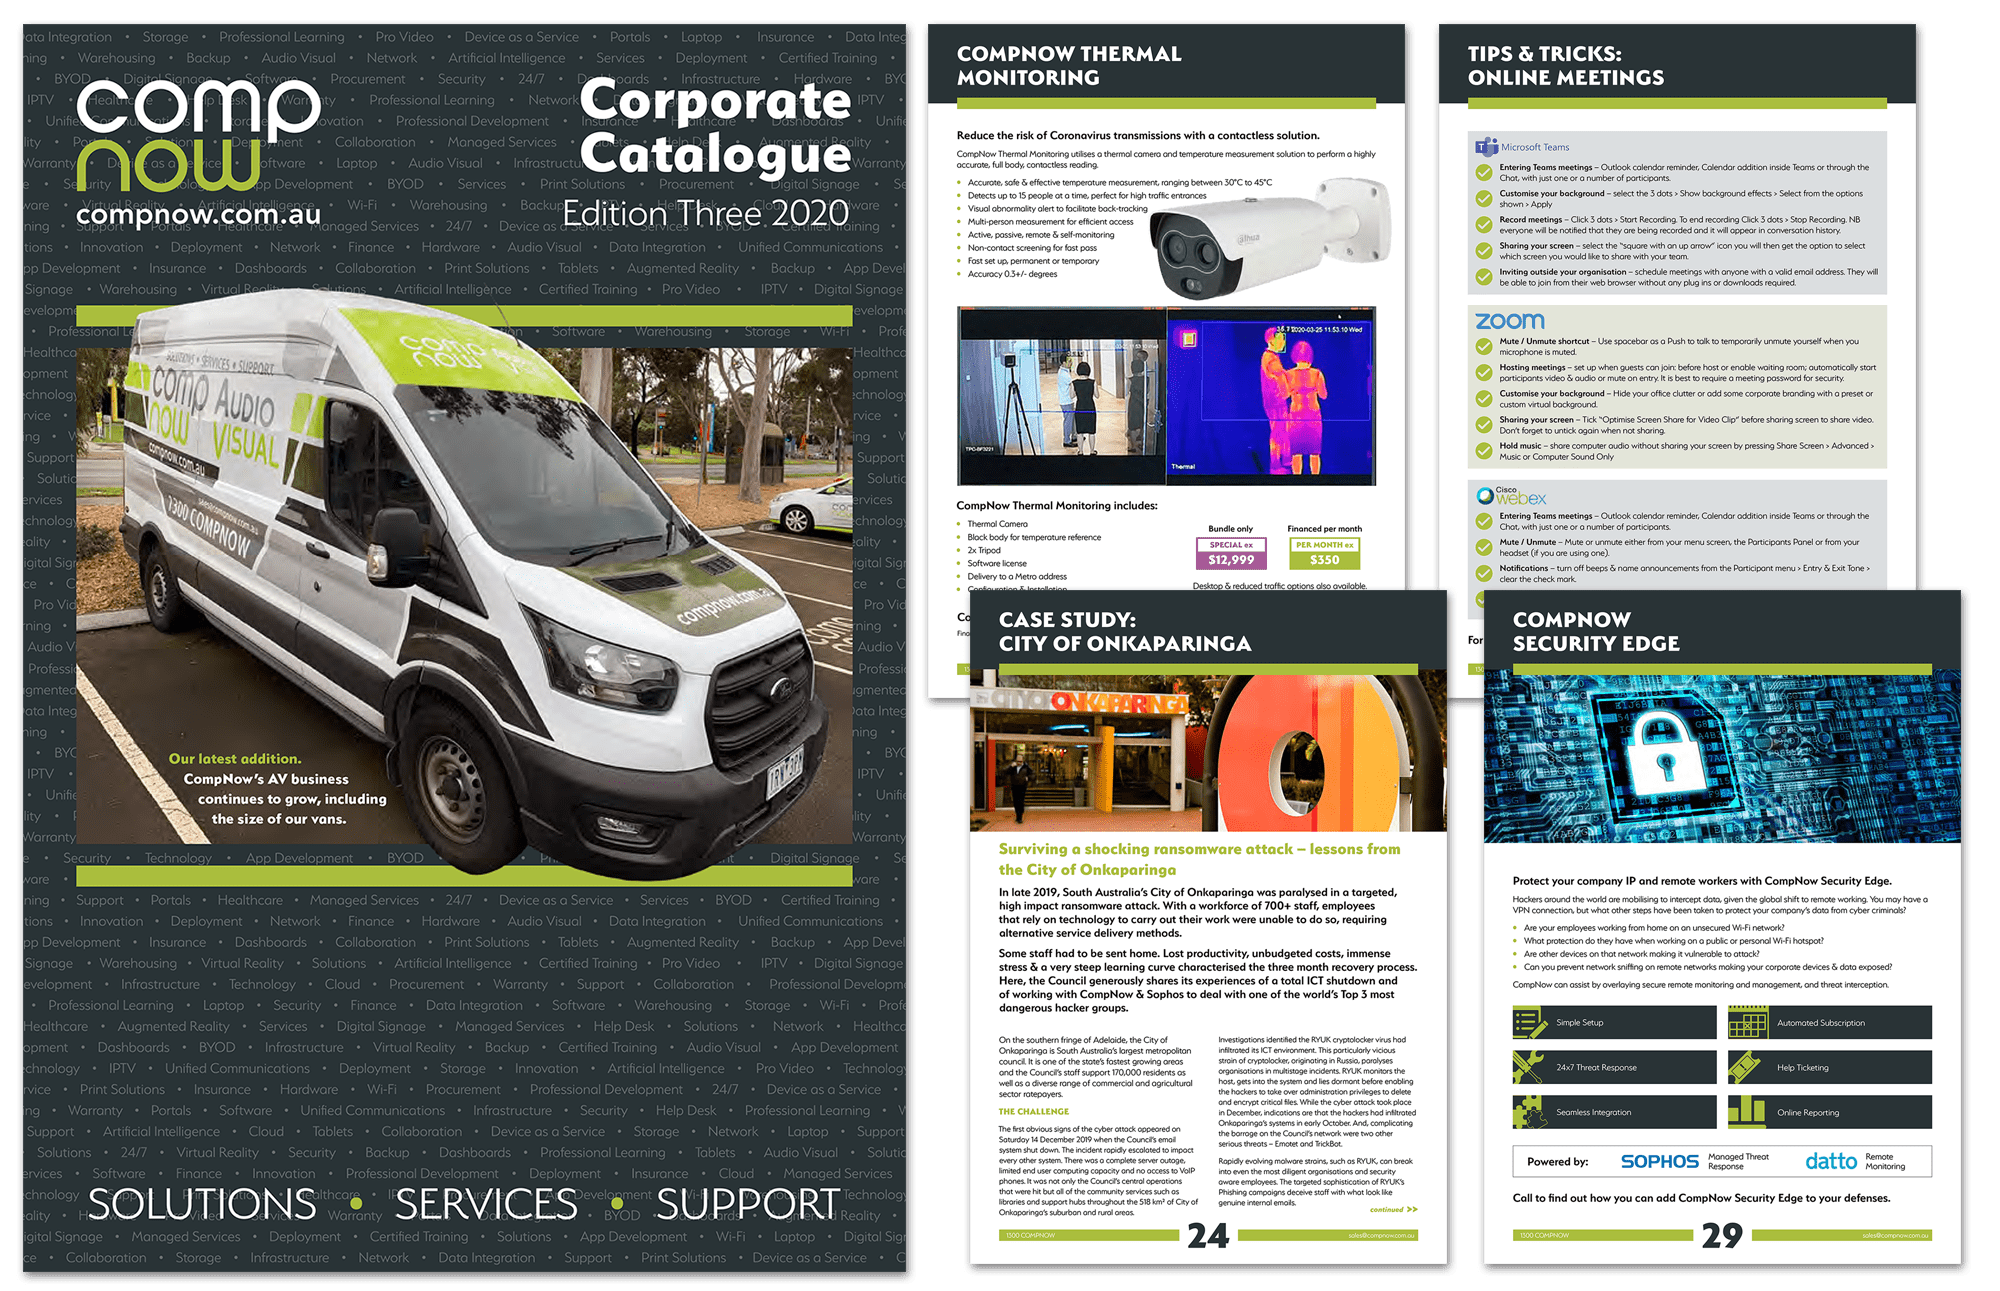 The latest Enterprise Solutions for FY21 in our Corporate Catalogue Edition Three